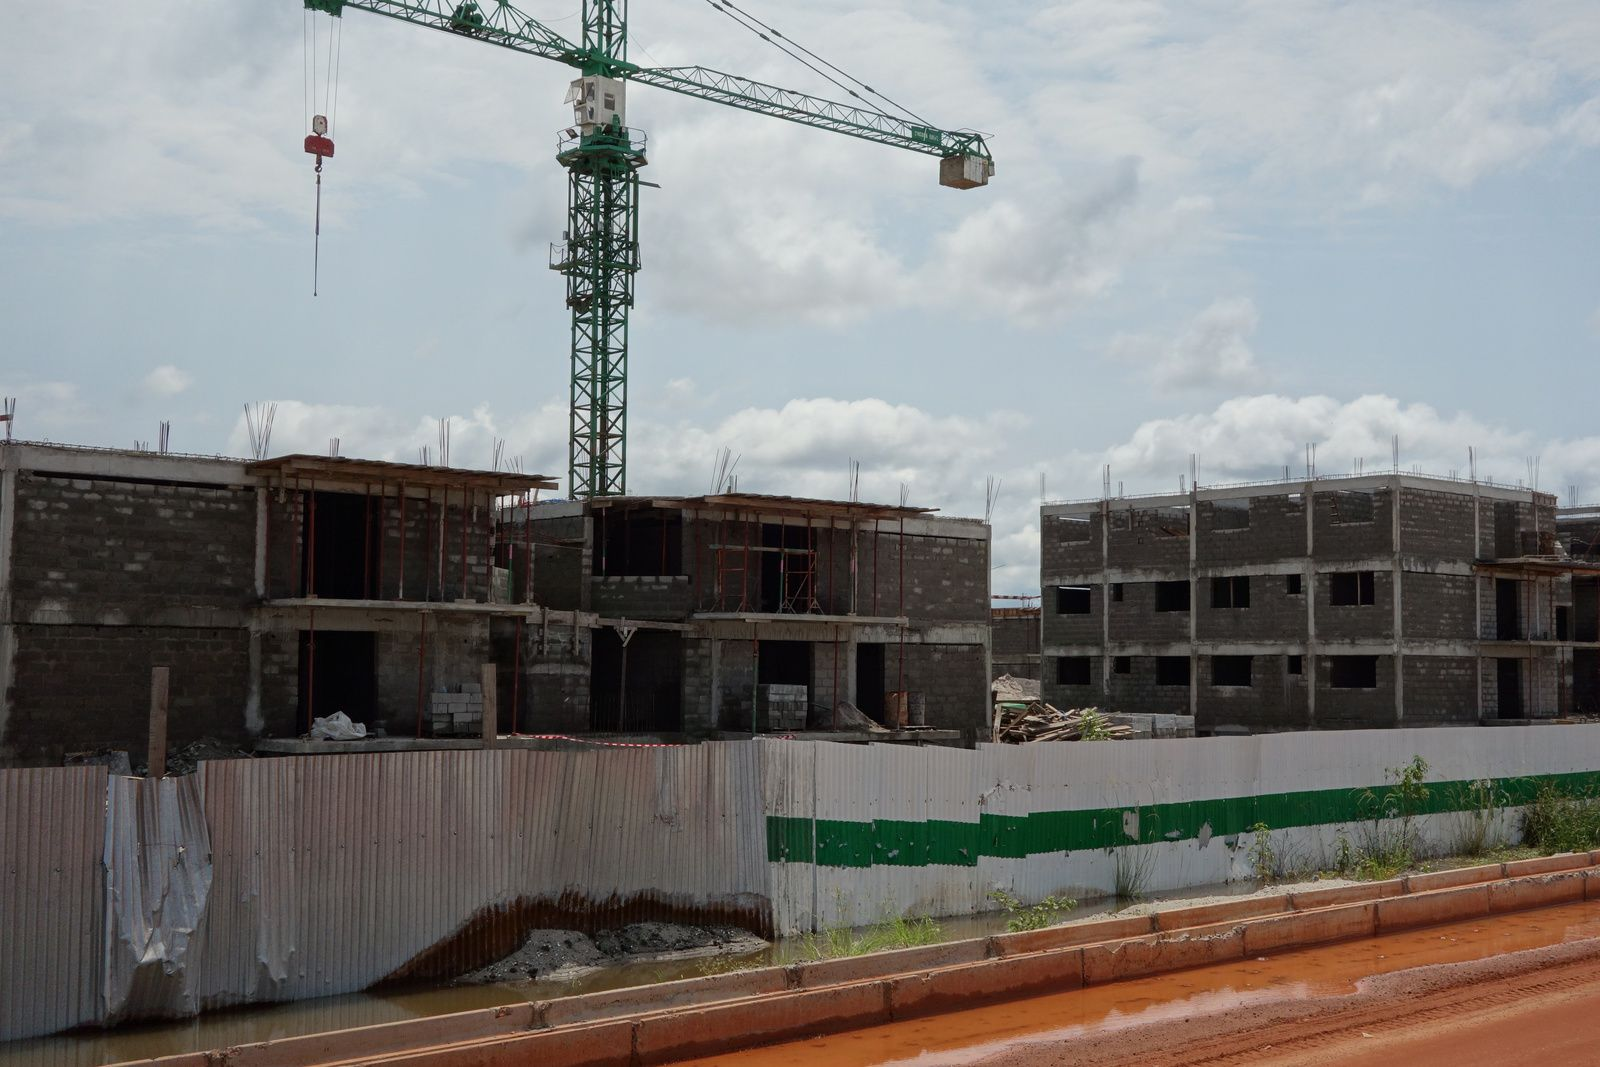 Le Gabon Émergent en Action: Construction de 1000 logements à Port-gentil